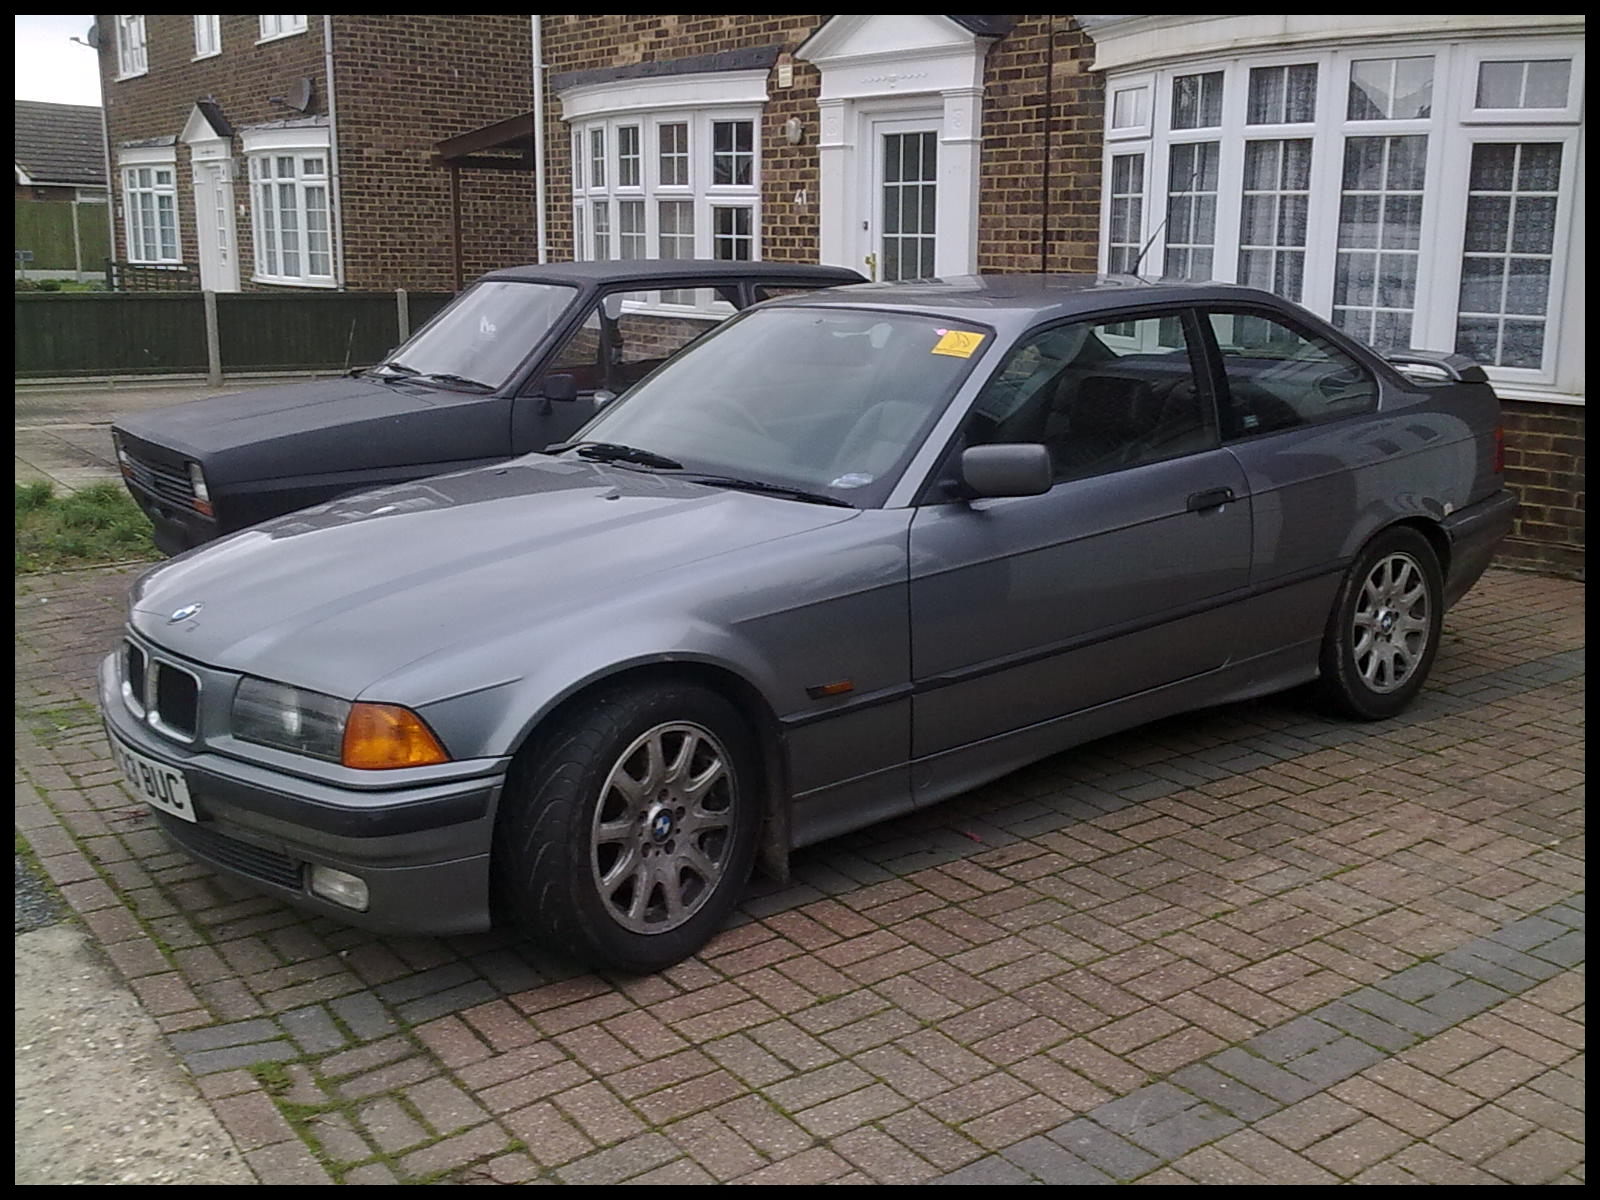 BMW 325i coupe 1995 160 000 miles MOT until march 22nd 2011 excellent runner just took us to Germany and back without a problem